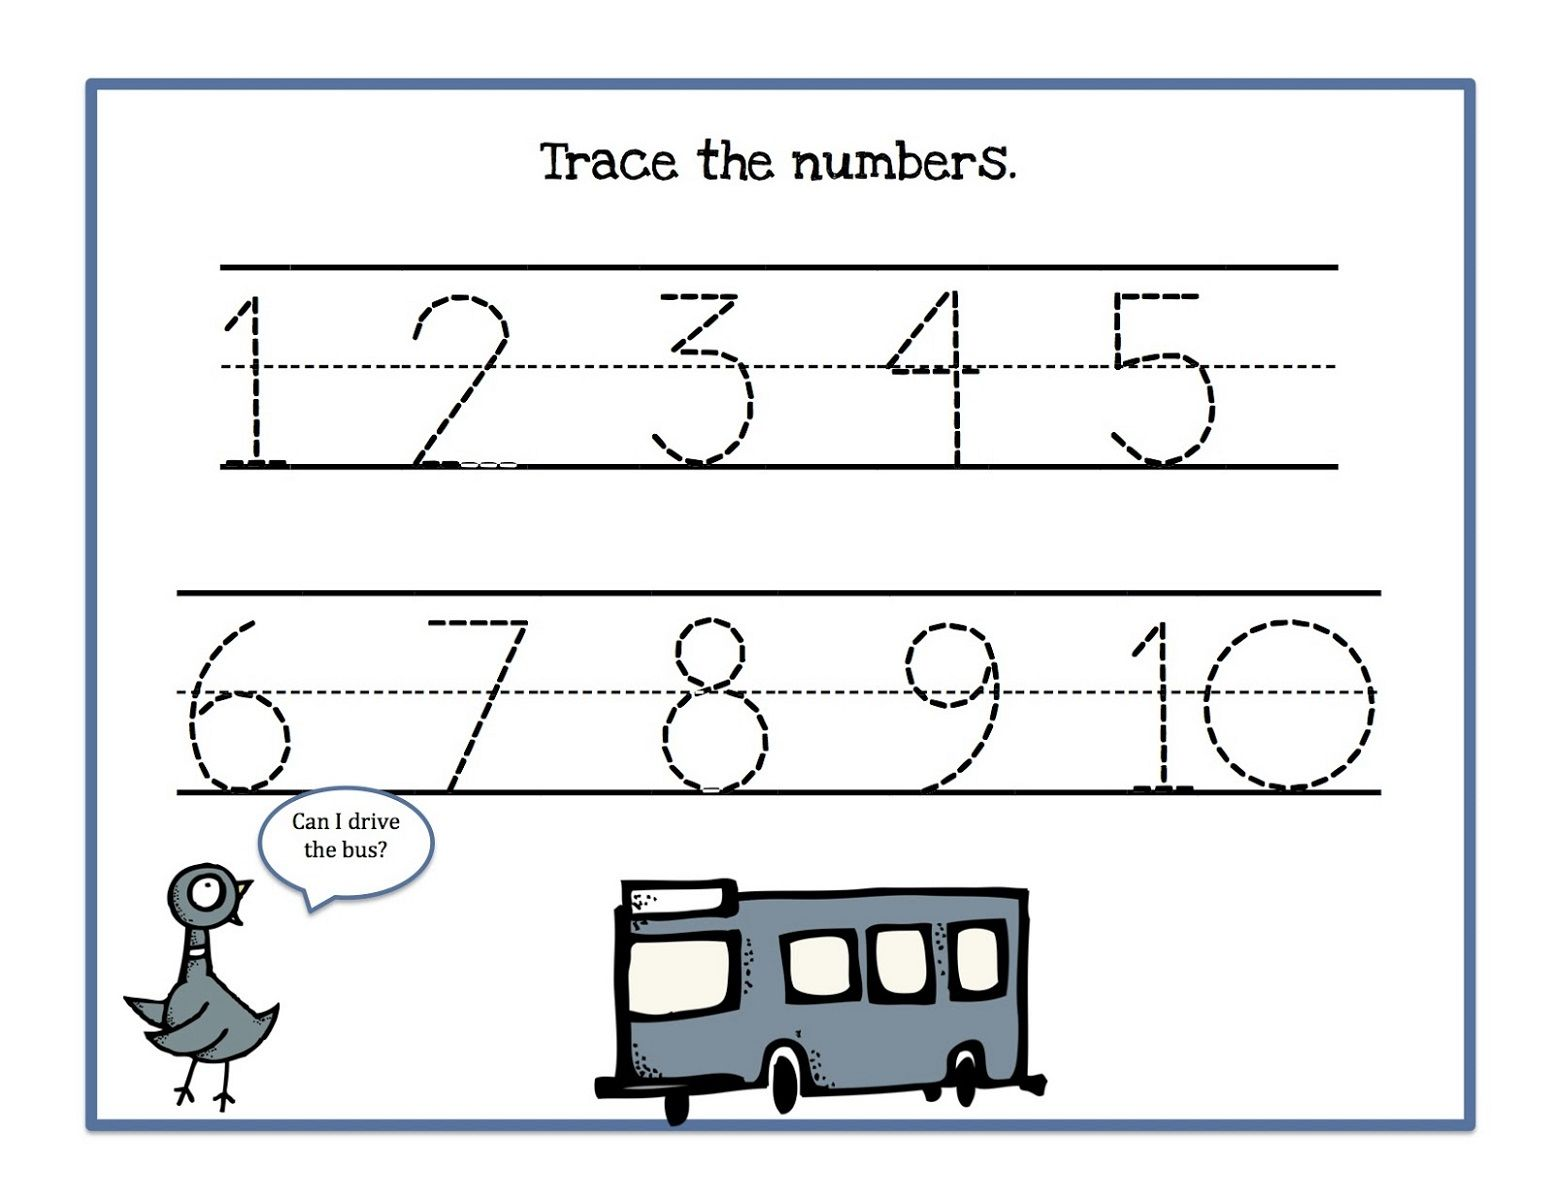 Number Trace Worksheets For Kid's Tracing Fun